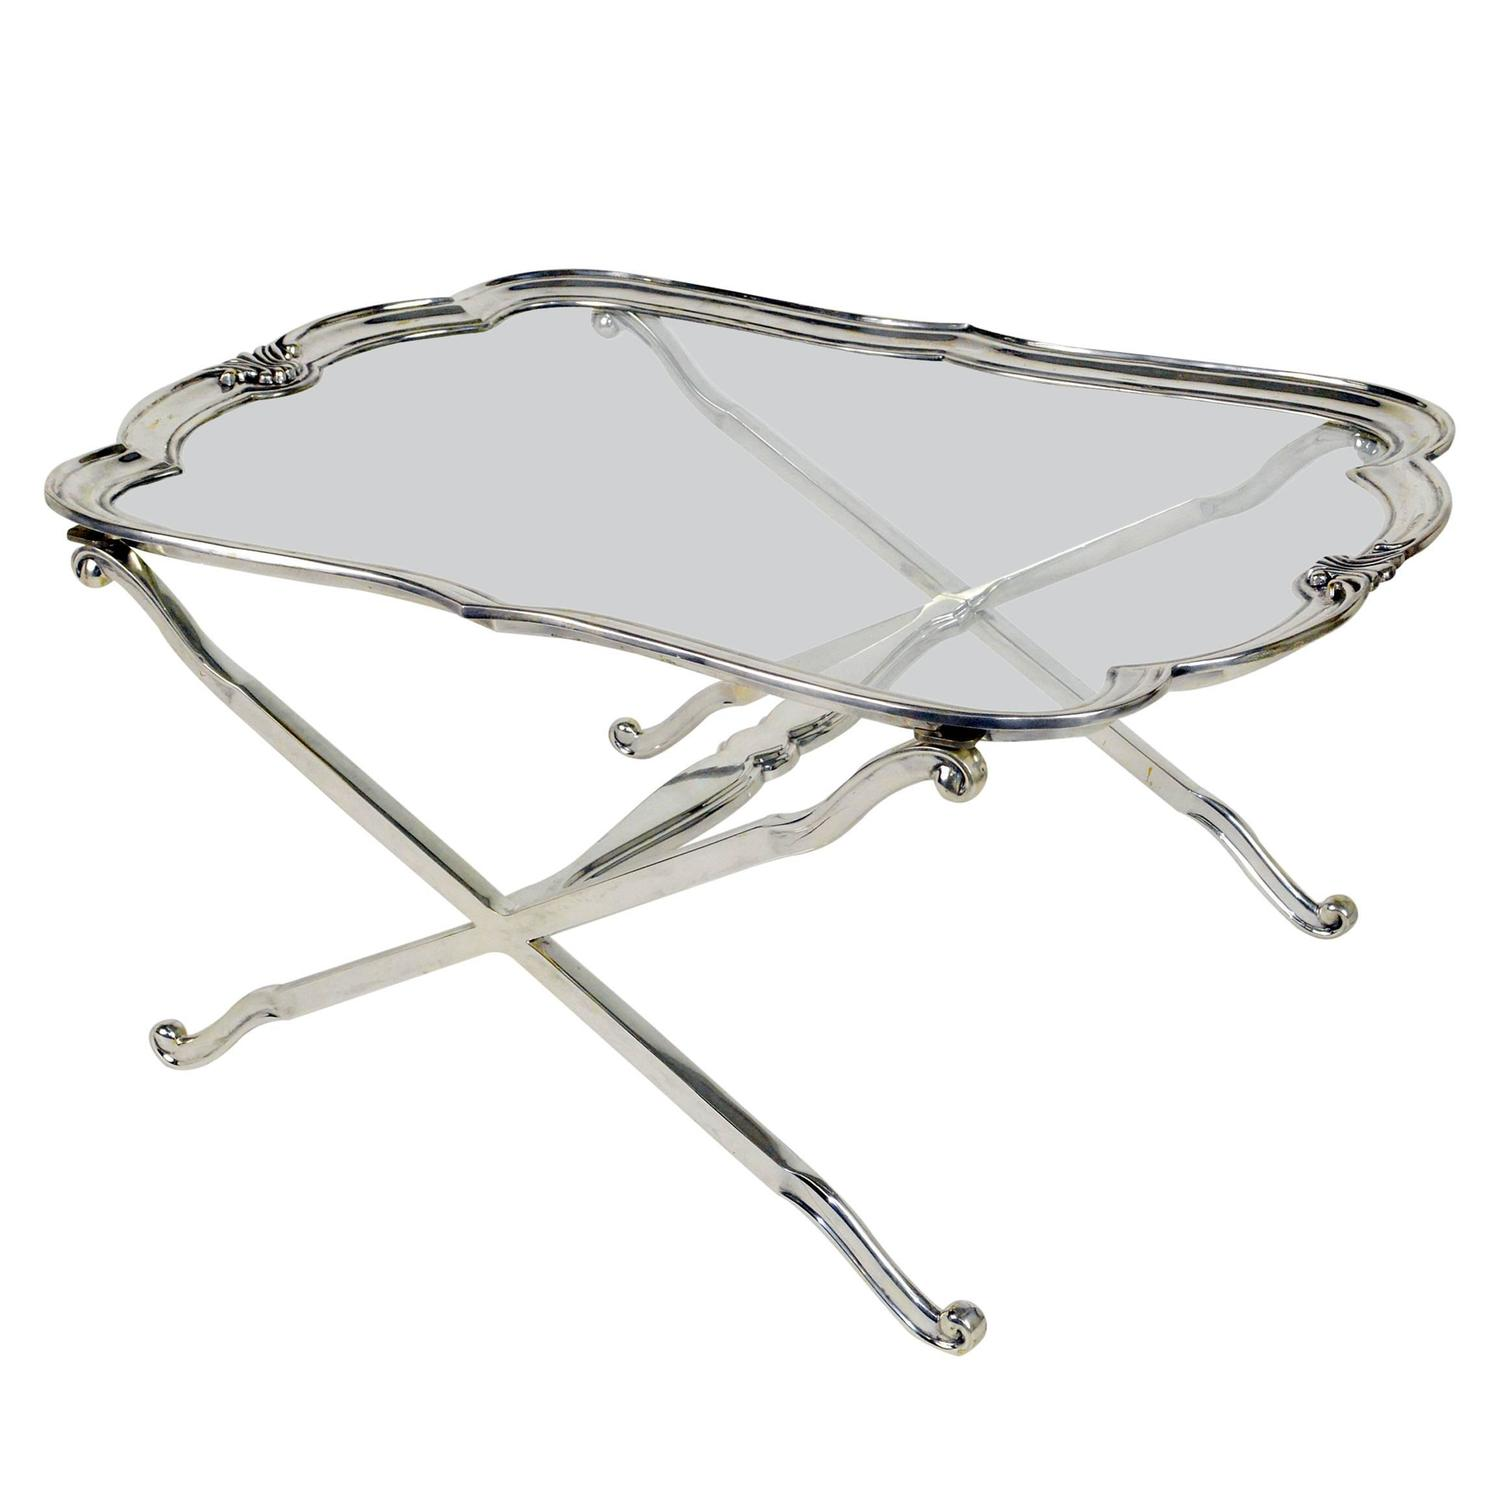 Regency Style Silver Plated And Glass Coffee Table For Sale At 1stdibs